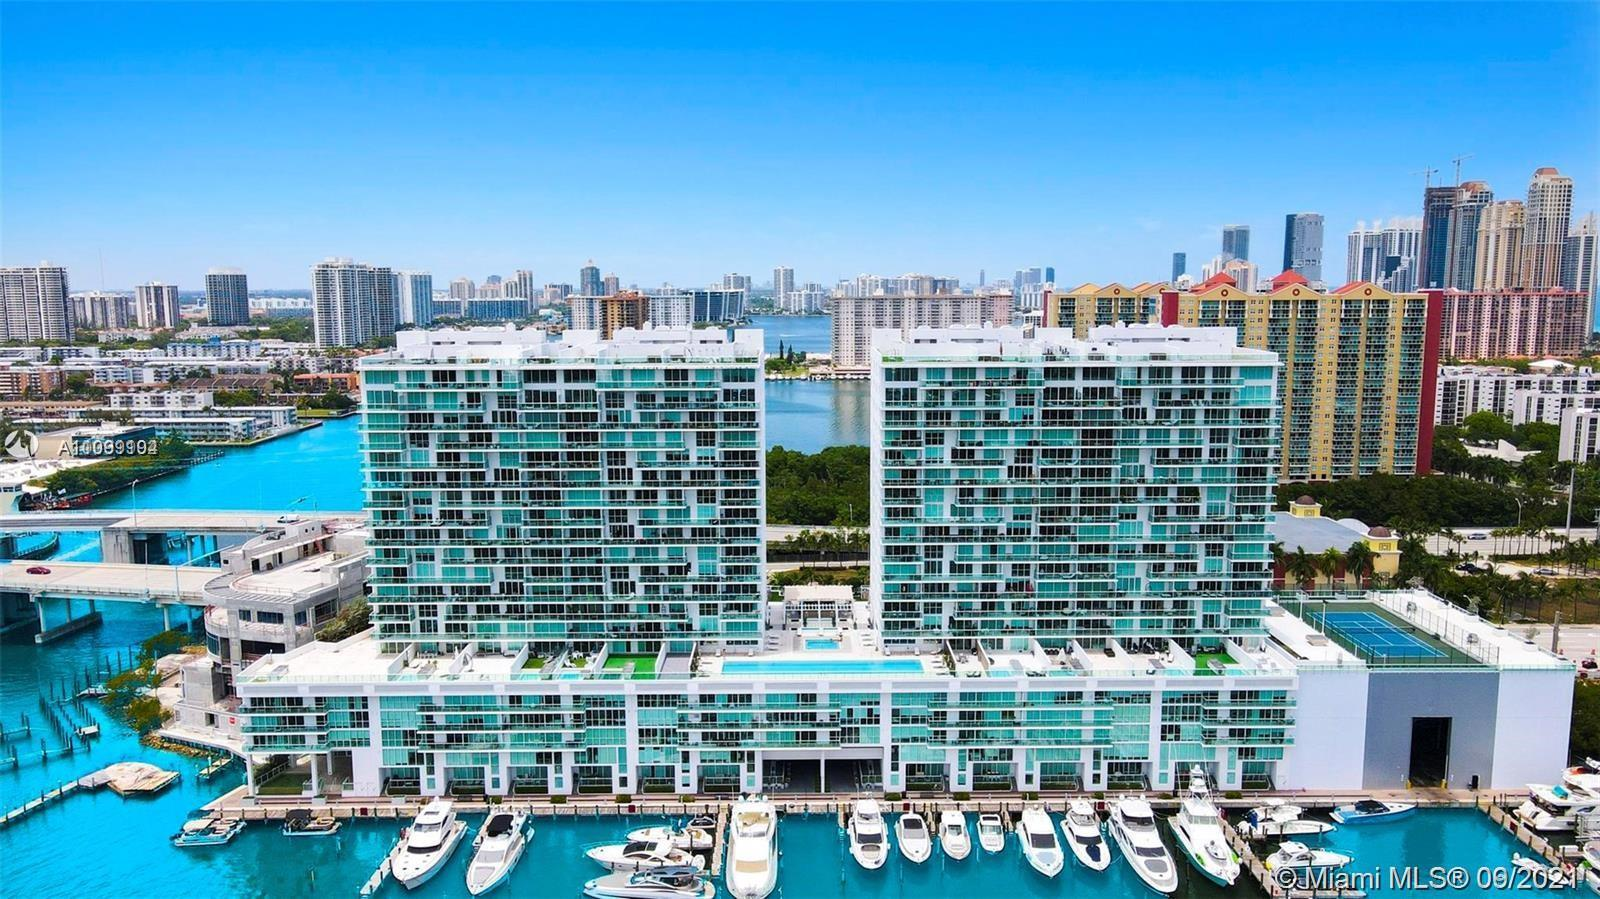 STUNNING BAY FRONT 2 BEDS 3 BATHS UNIT AT 400 SUNNY CONDO. MAGNIFICENT INTRACOASTAL AND OCEAN VIEWS